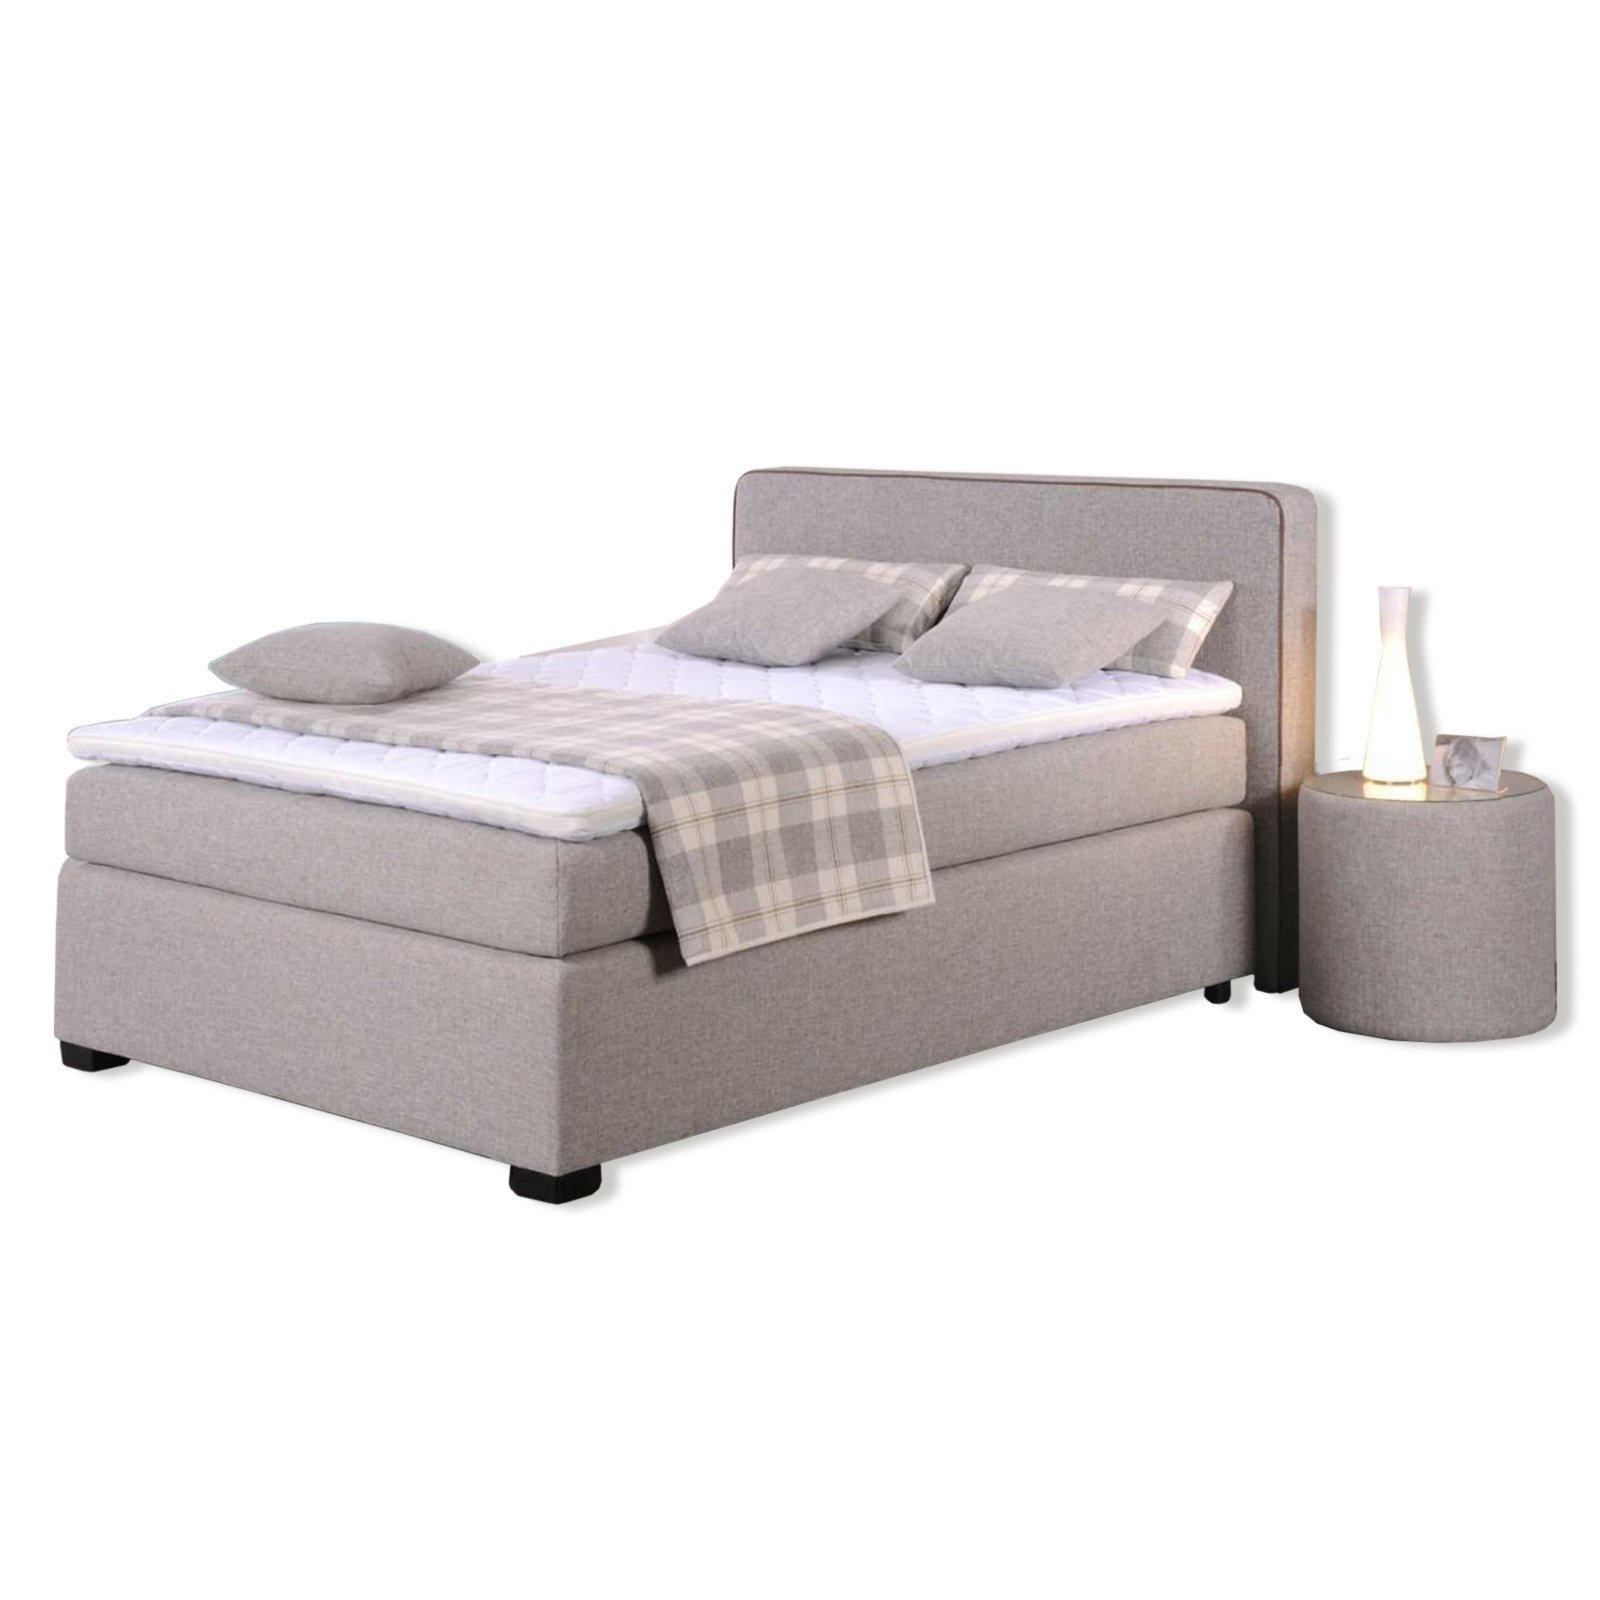 roller boxspringbett noxa sand braun 140x200 cm h2 ebay. Black Bedroom Furniture Sets. Home Design Ideas